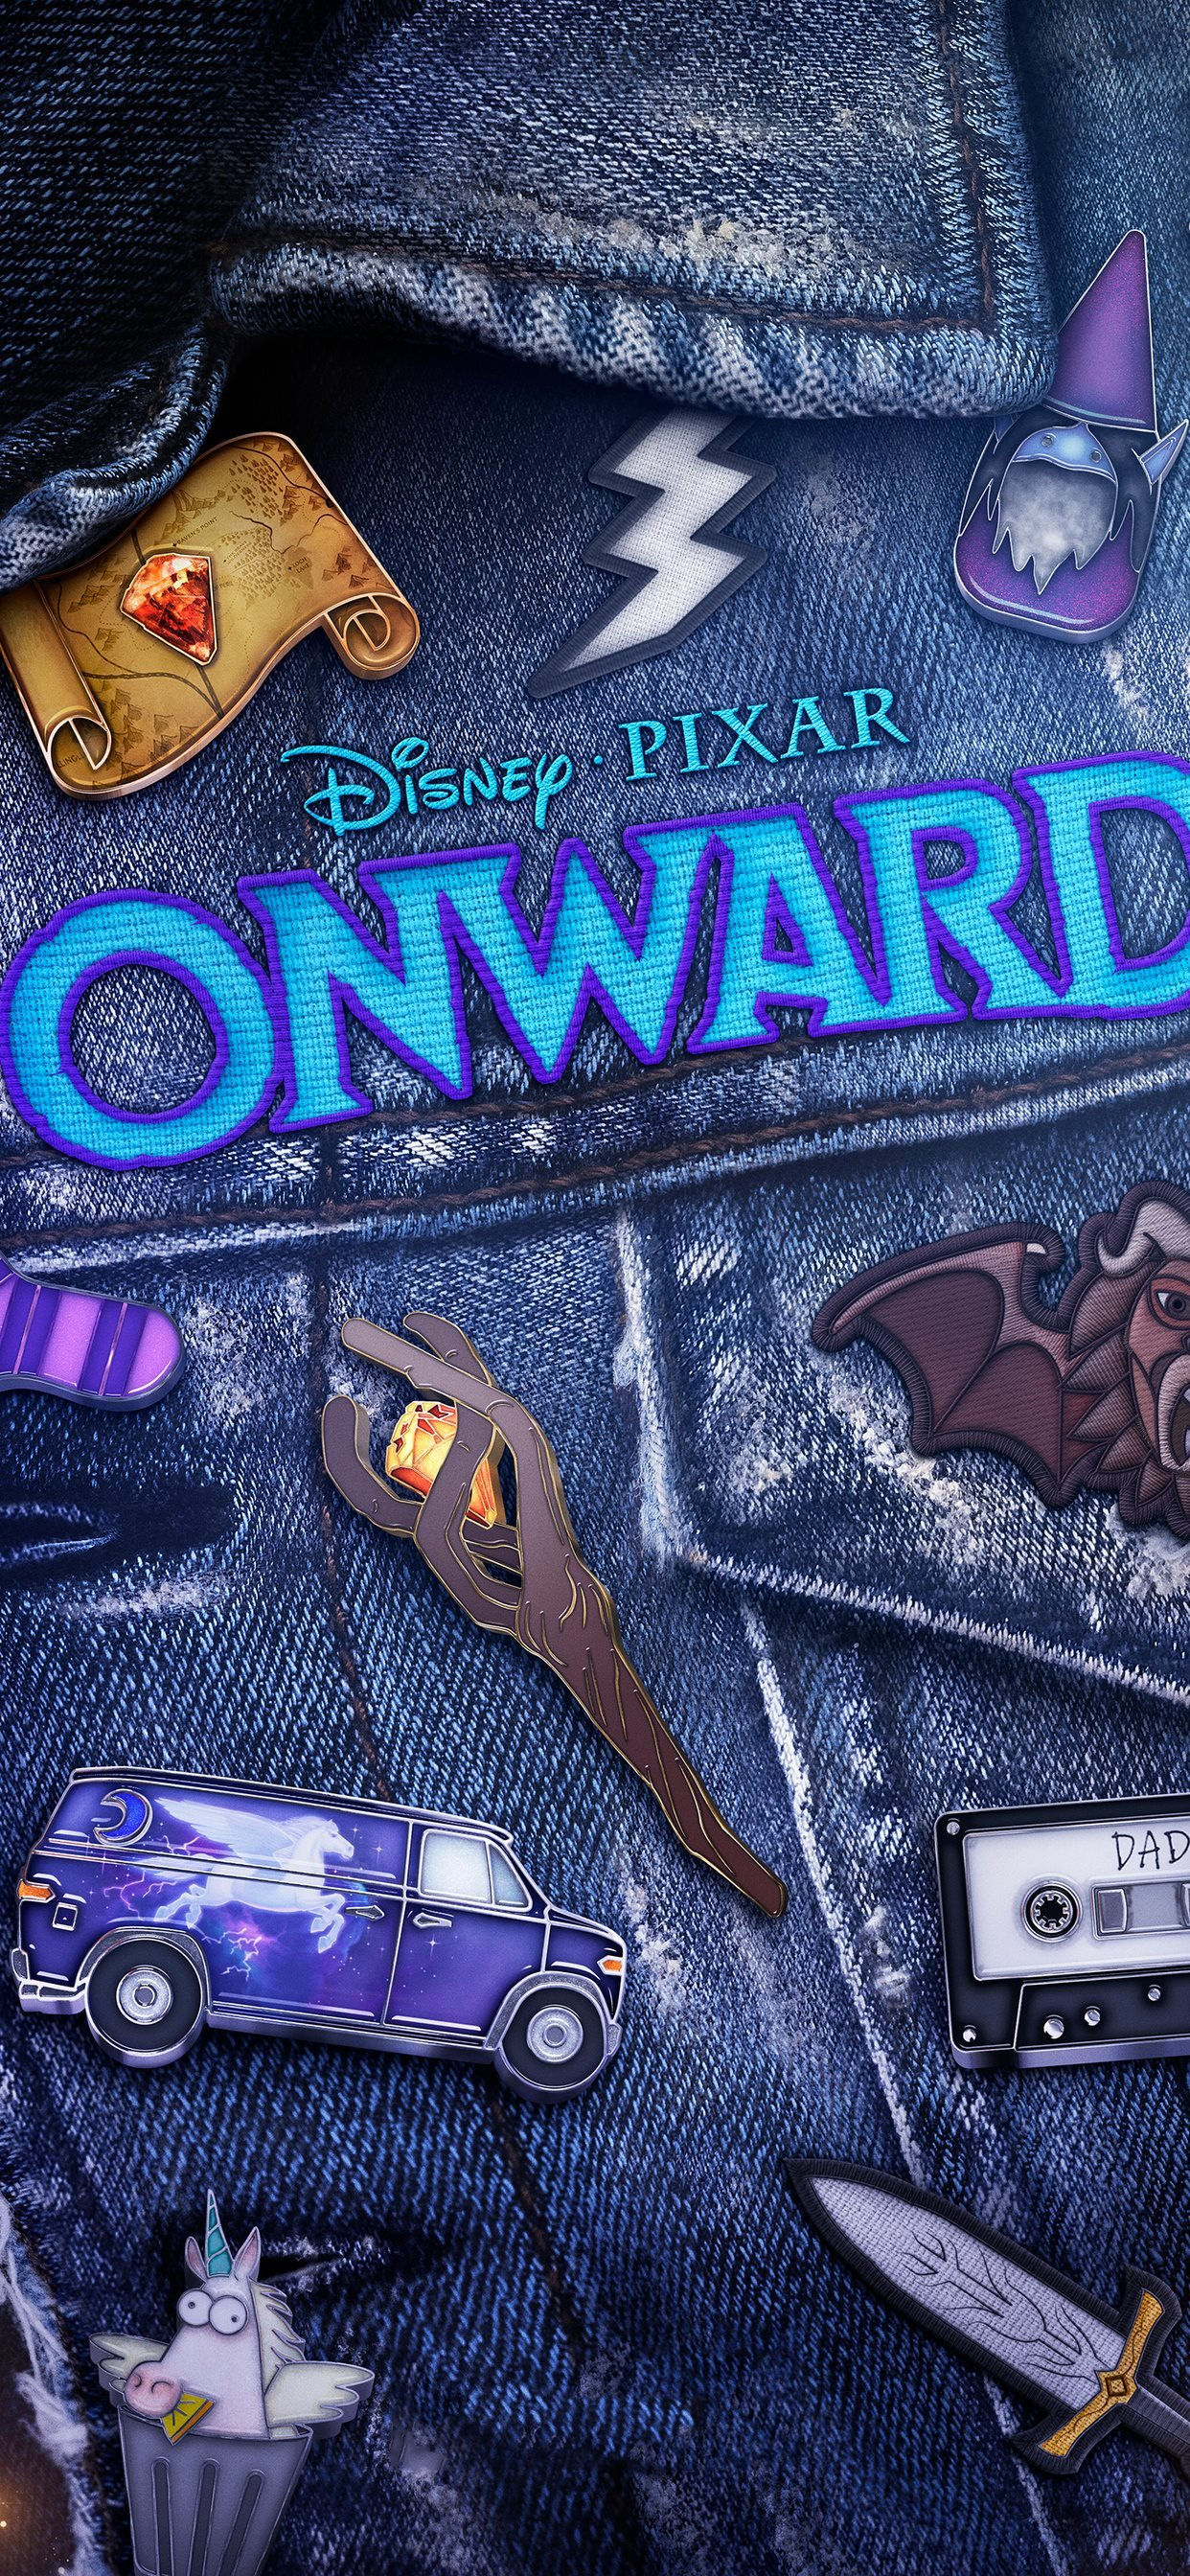 onward 2020 4k iPhone X Wallpapers Download 1242x2688